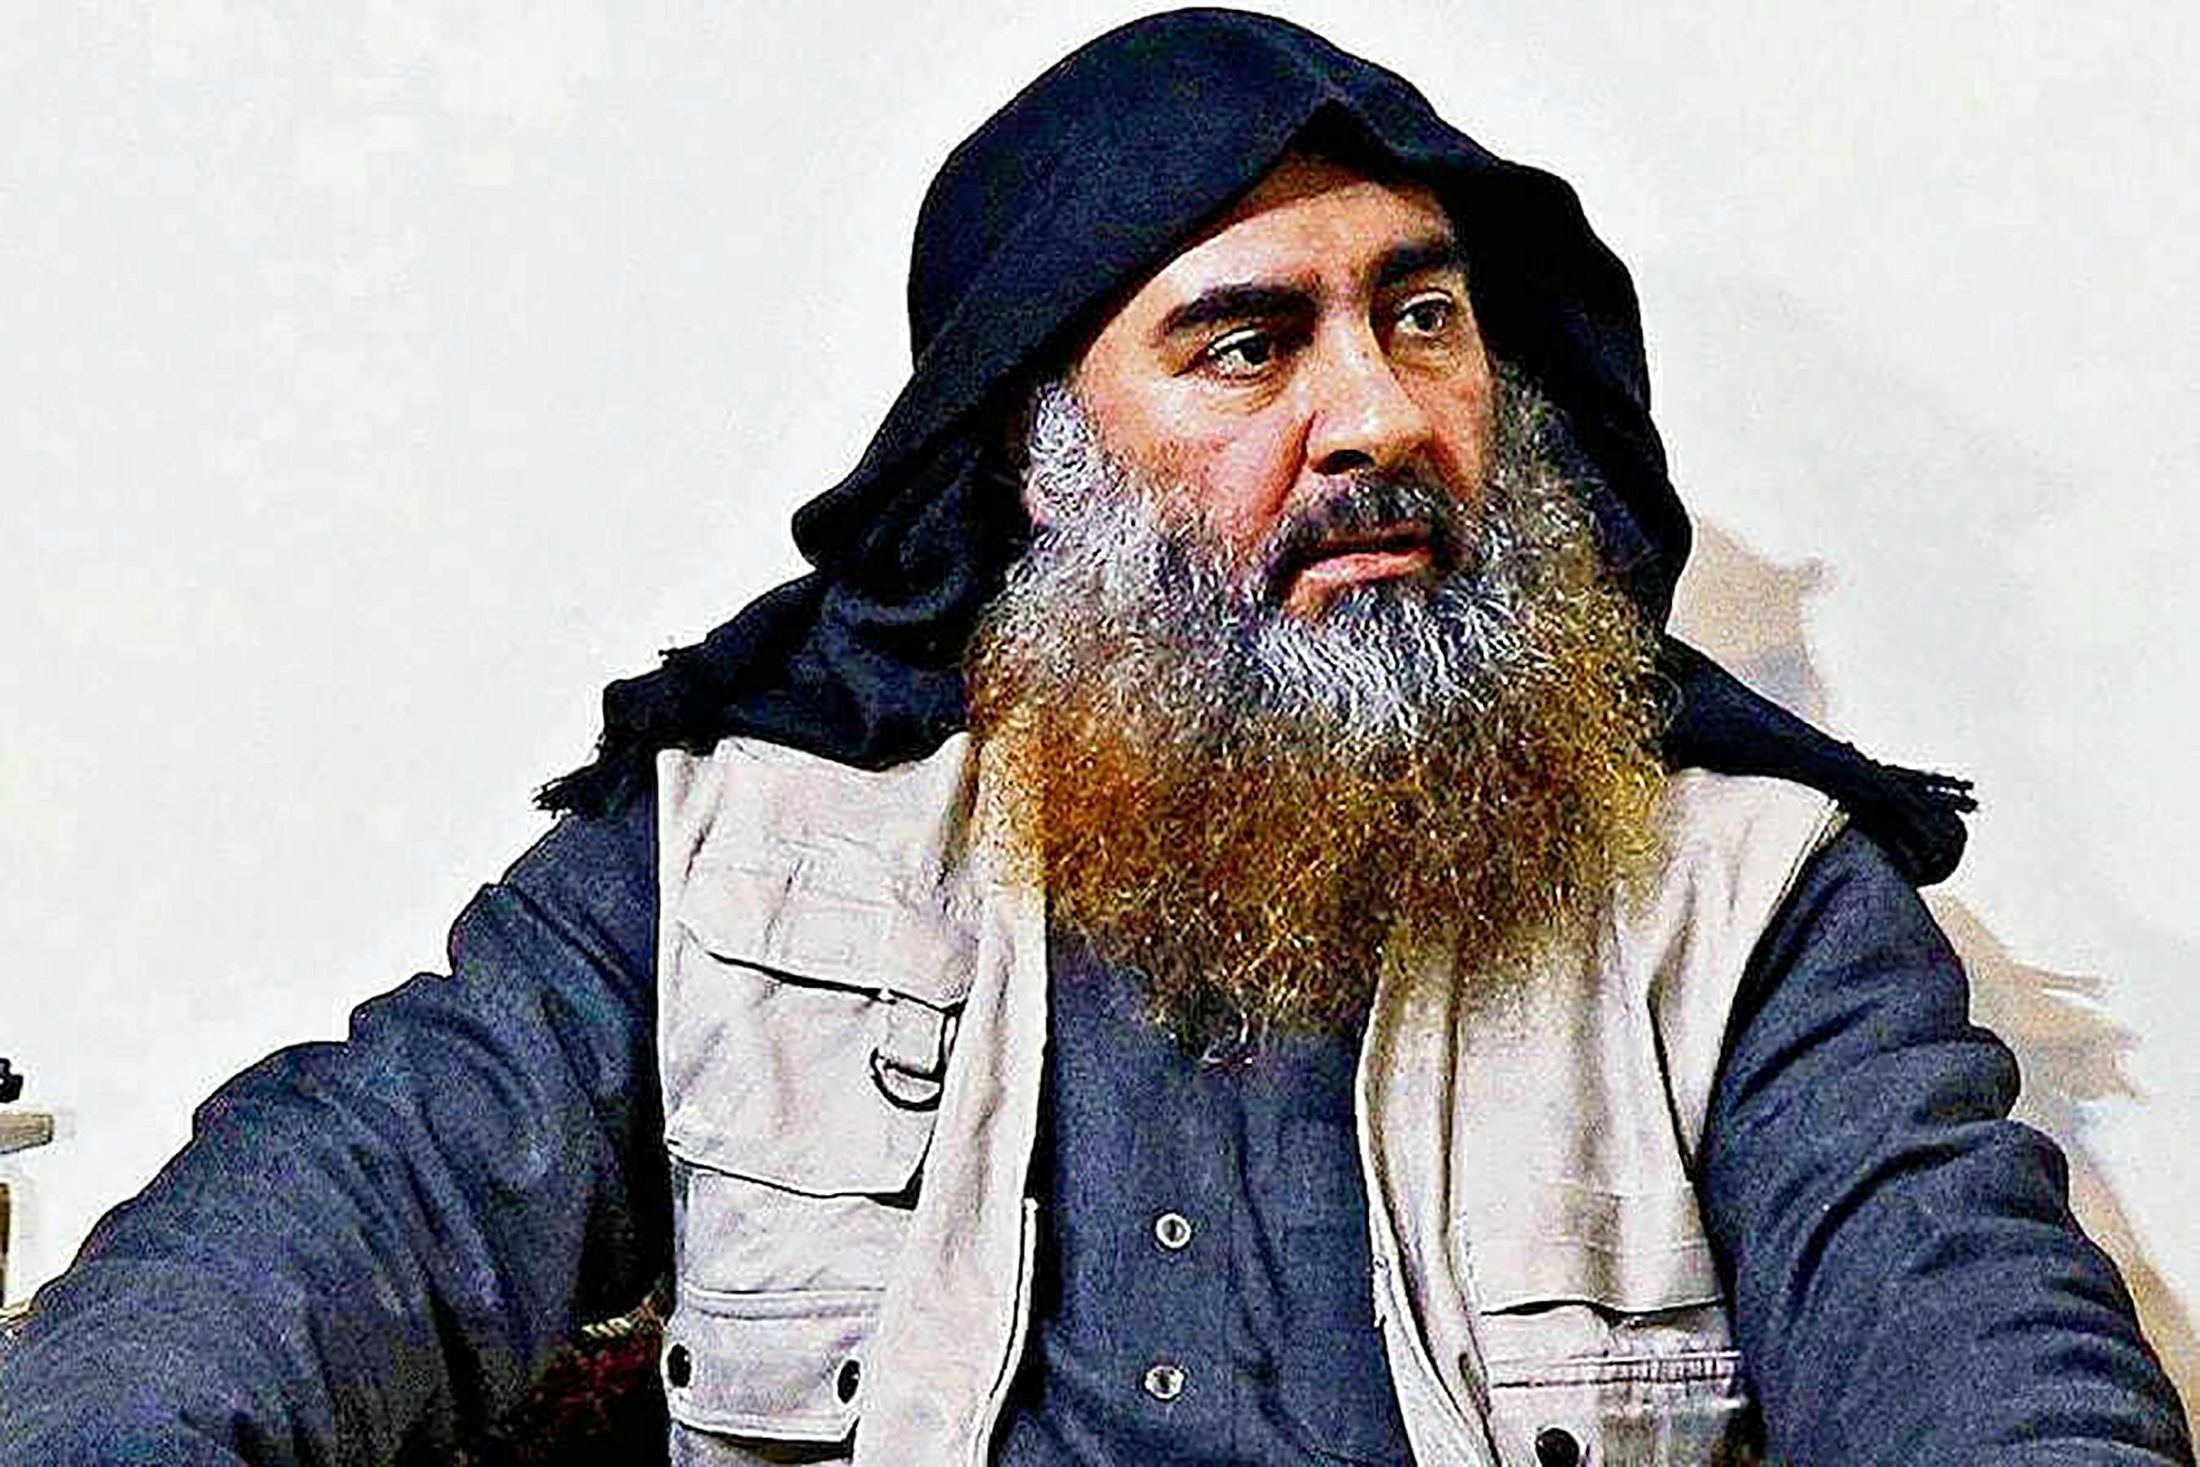 Late Islamic State leader Abu Bakr al-Baghdadi is seen in an undated picture released by the U.S. Department of Defense in Washington, U.S. October 30, 2019. U.S. Department of Defense/Handout via REUTERS